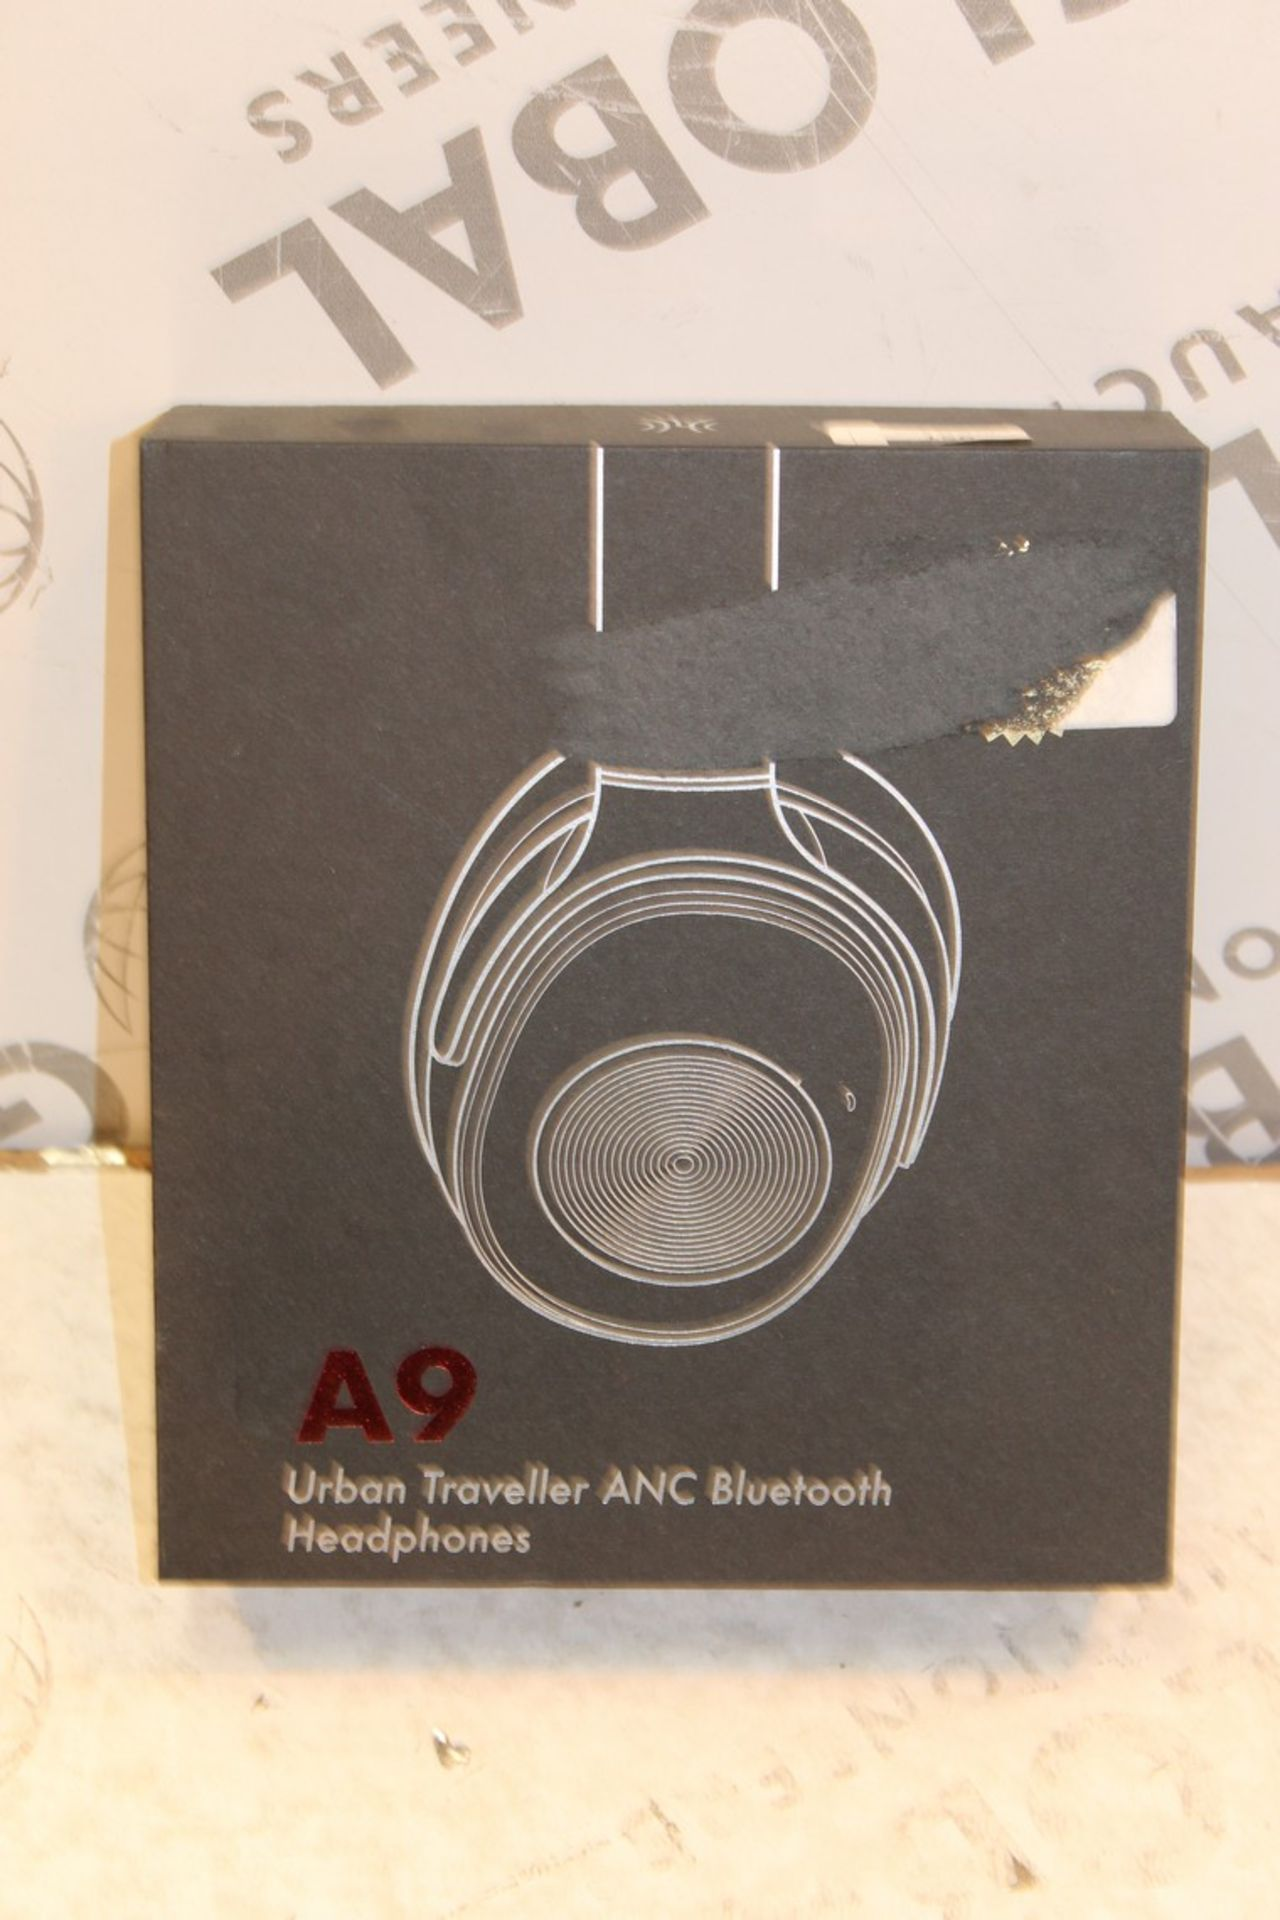 Lot 156 - Boxed A9 Urban Traveller Headphones RRP £55 (Pictures Are For Illustration Purposes Only)(Appraisals